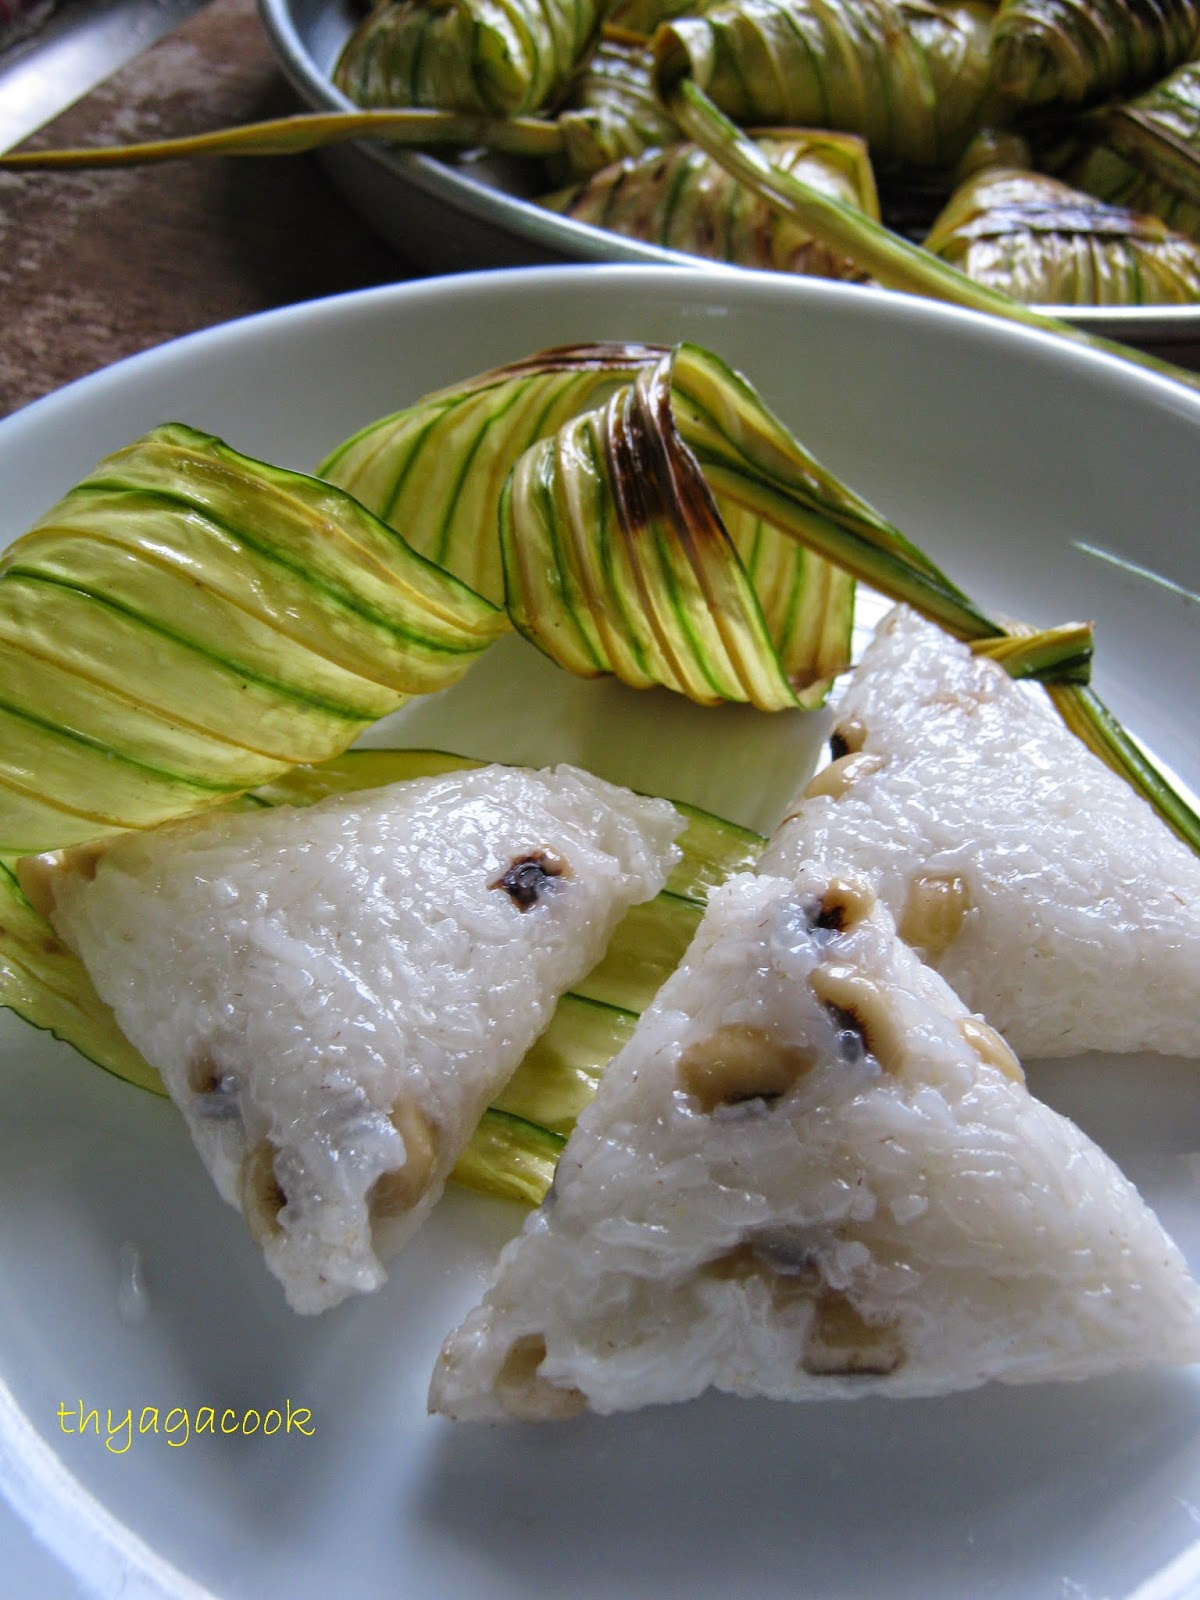 Kari Leafs Malaysian Flavours Sweet Ketupat Daun Palas Parcel 5 Add In Some Oil A Wok And Heat It Up Put The Ketupats Fry Until Fragrant Make Sure Not To Burn Them